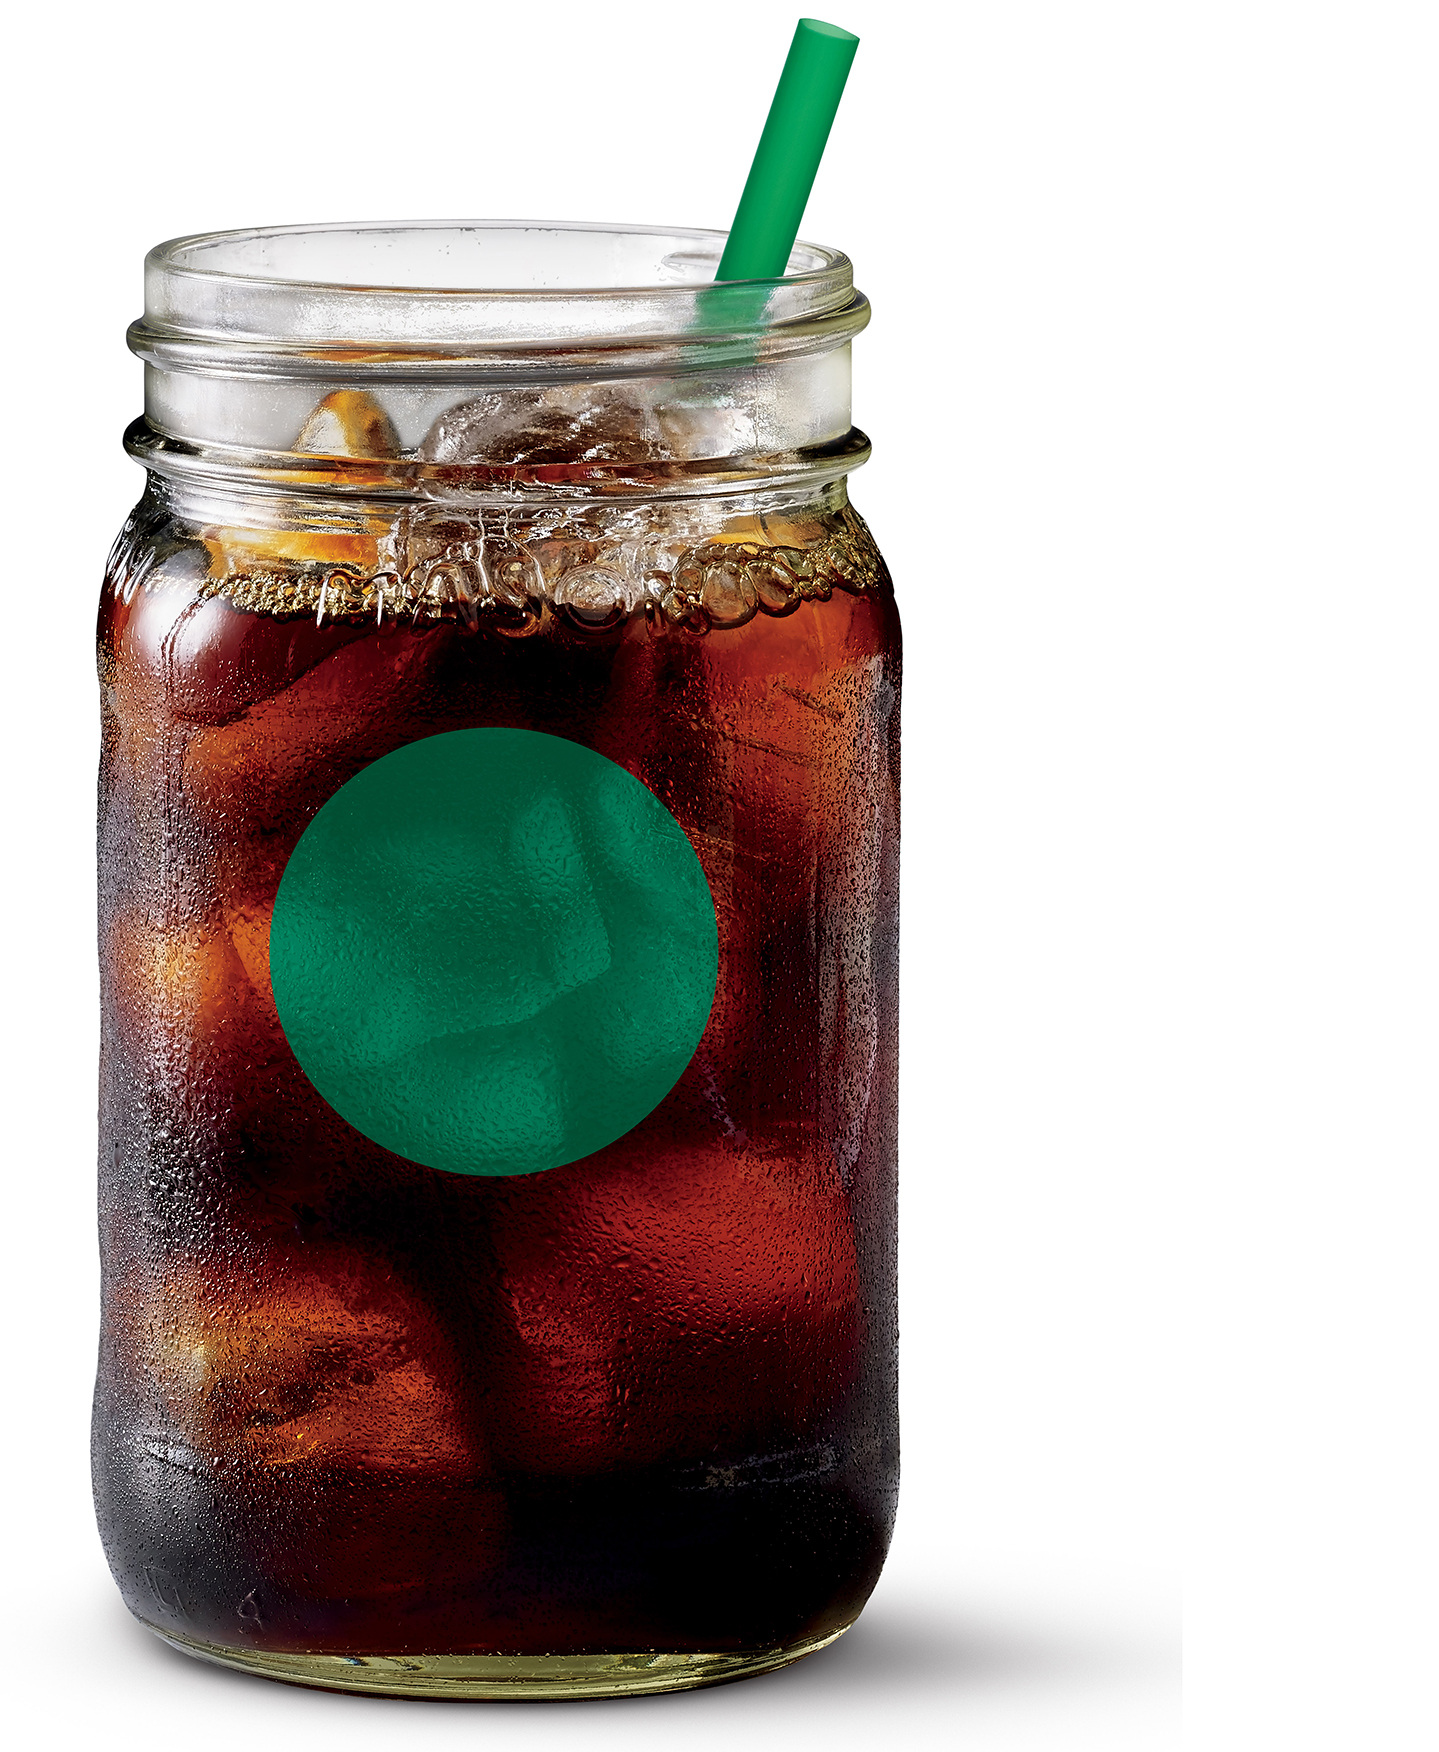 Artisan brew - With the launch of cold brew, Starbucks had an opportunity to counter a mass image. Each batch of cold brew was made in store and would sell out daily.This campaign leans heavily on iconic Starbucks brand cues, while it delivers a hand touched message.